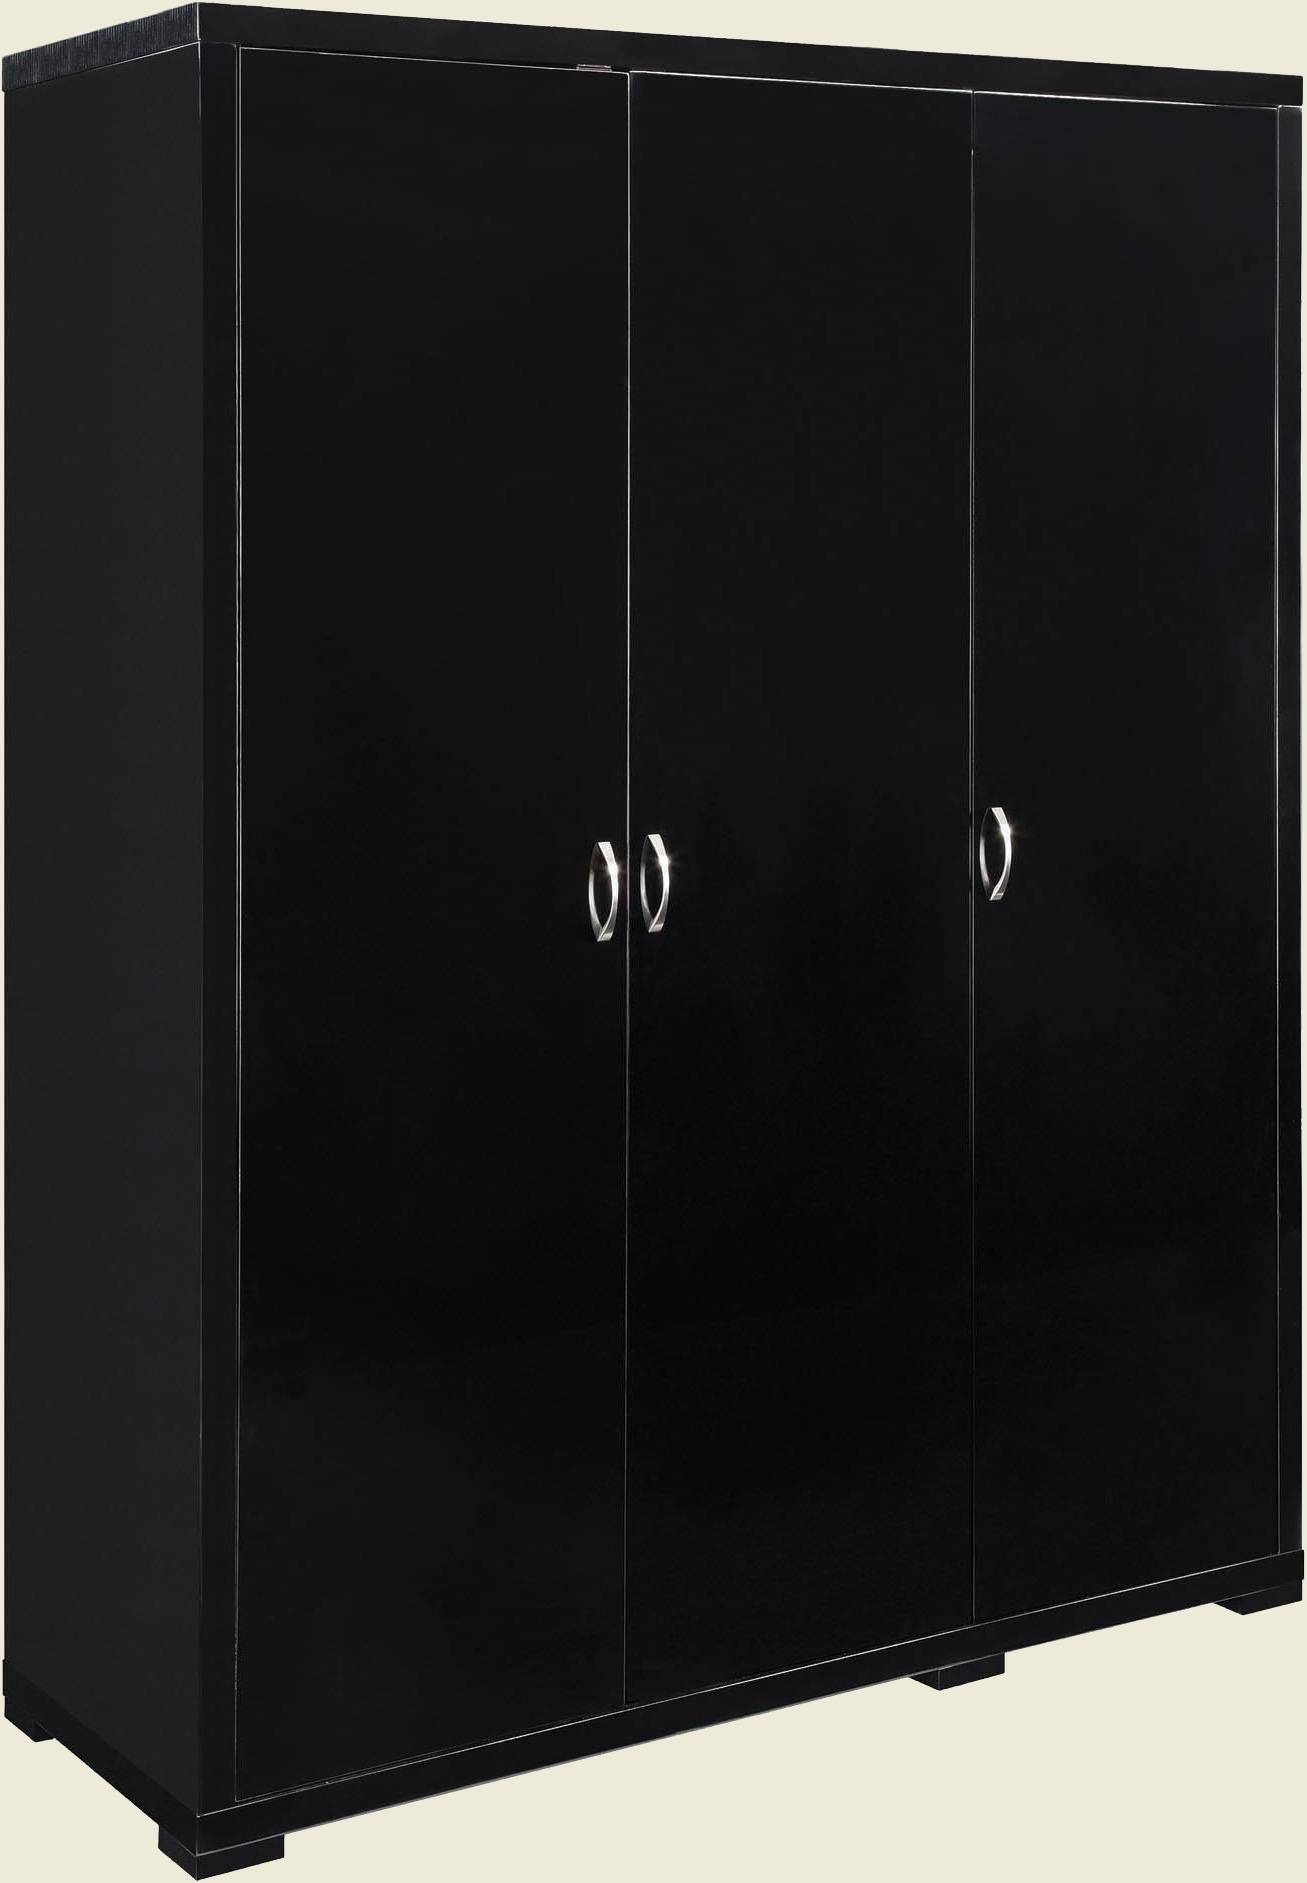 Luna 3 Door Wardrobe in Black 3 Door Wardrobes (Image 14 of 15)